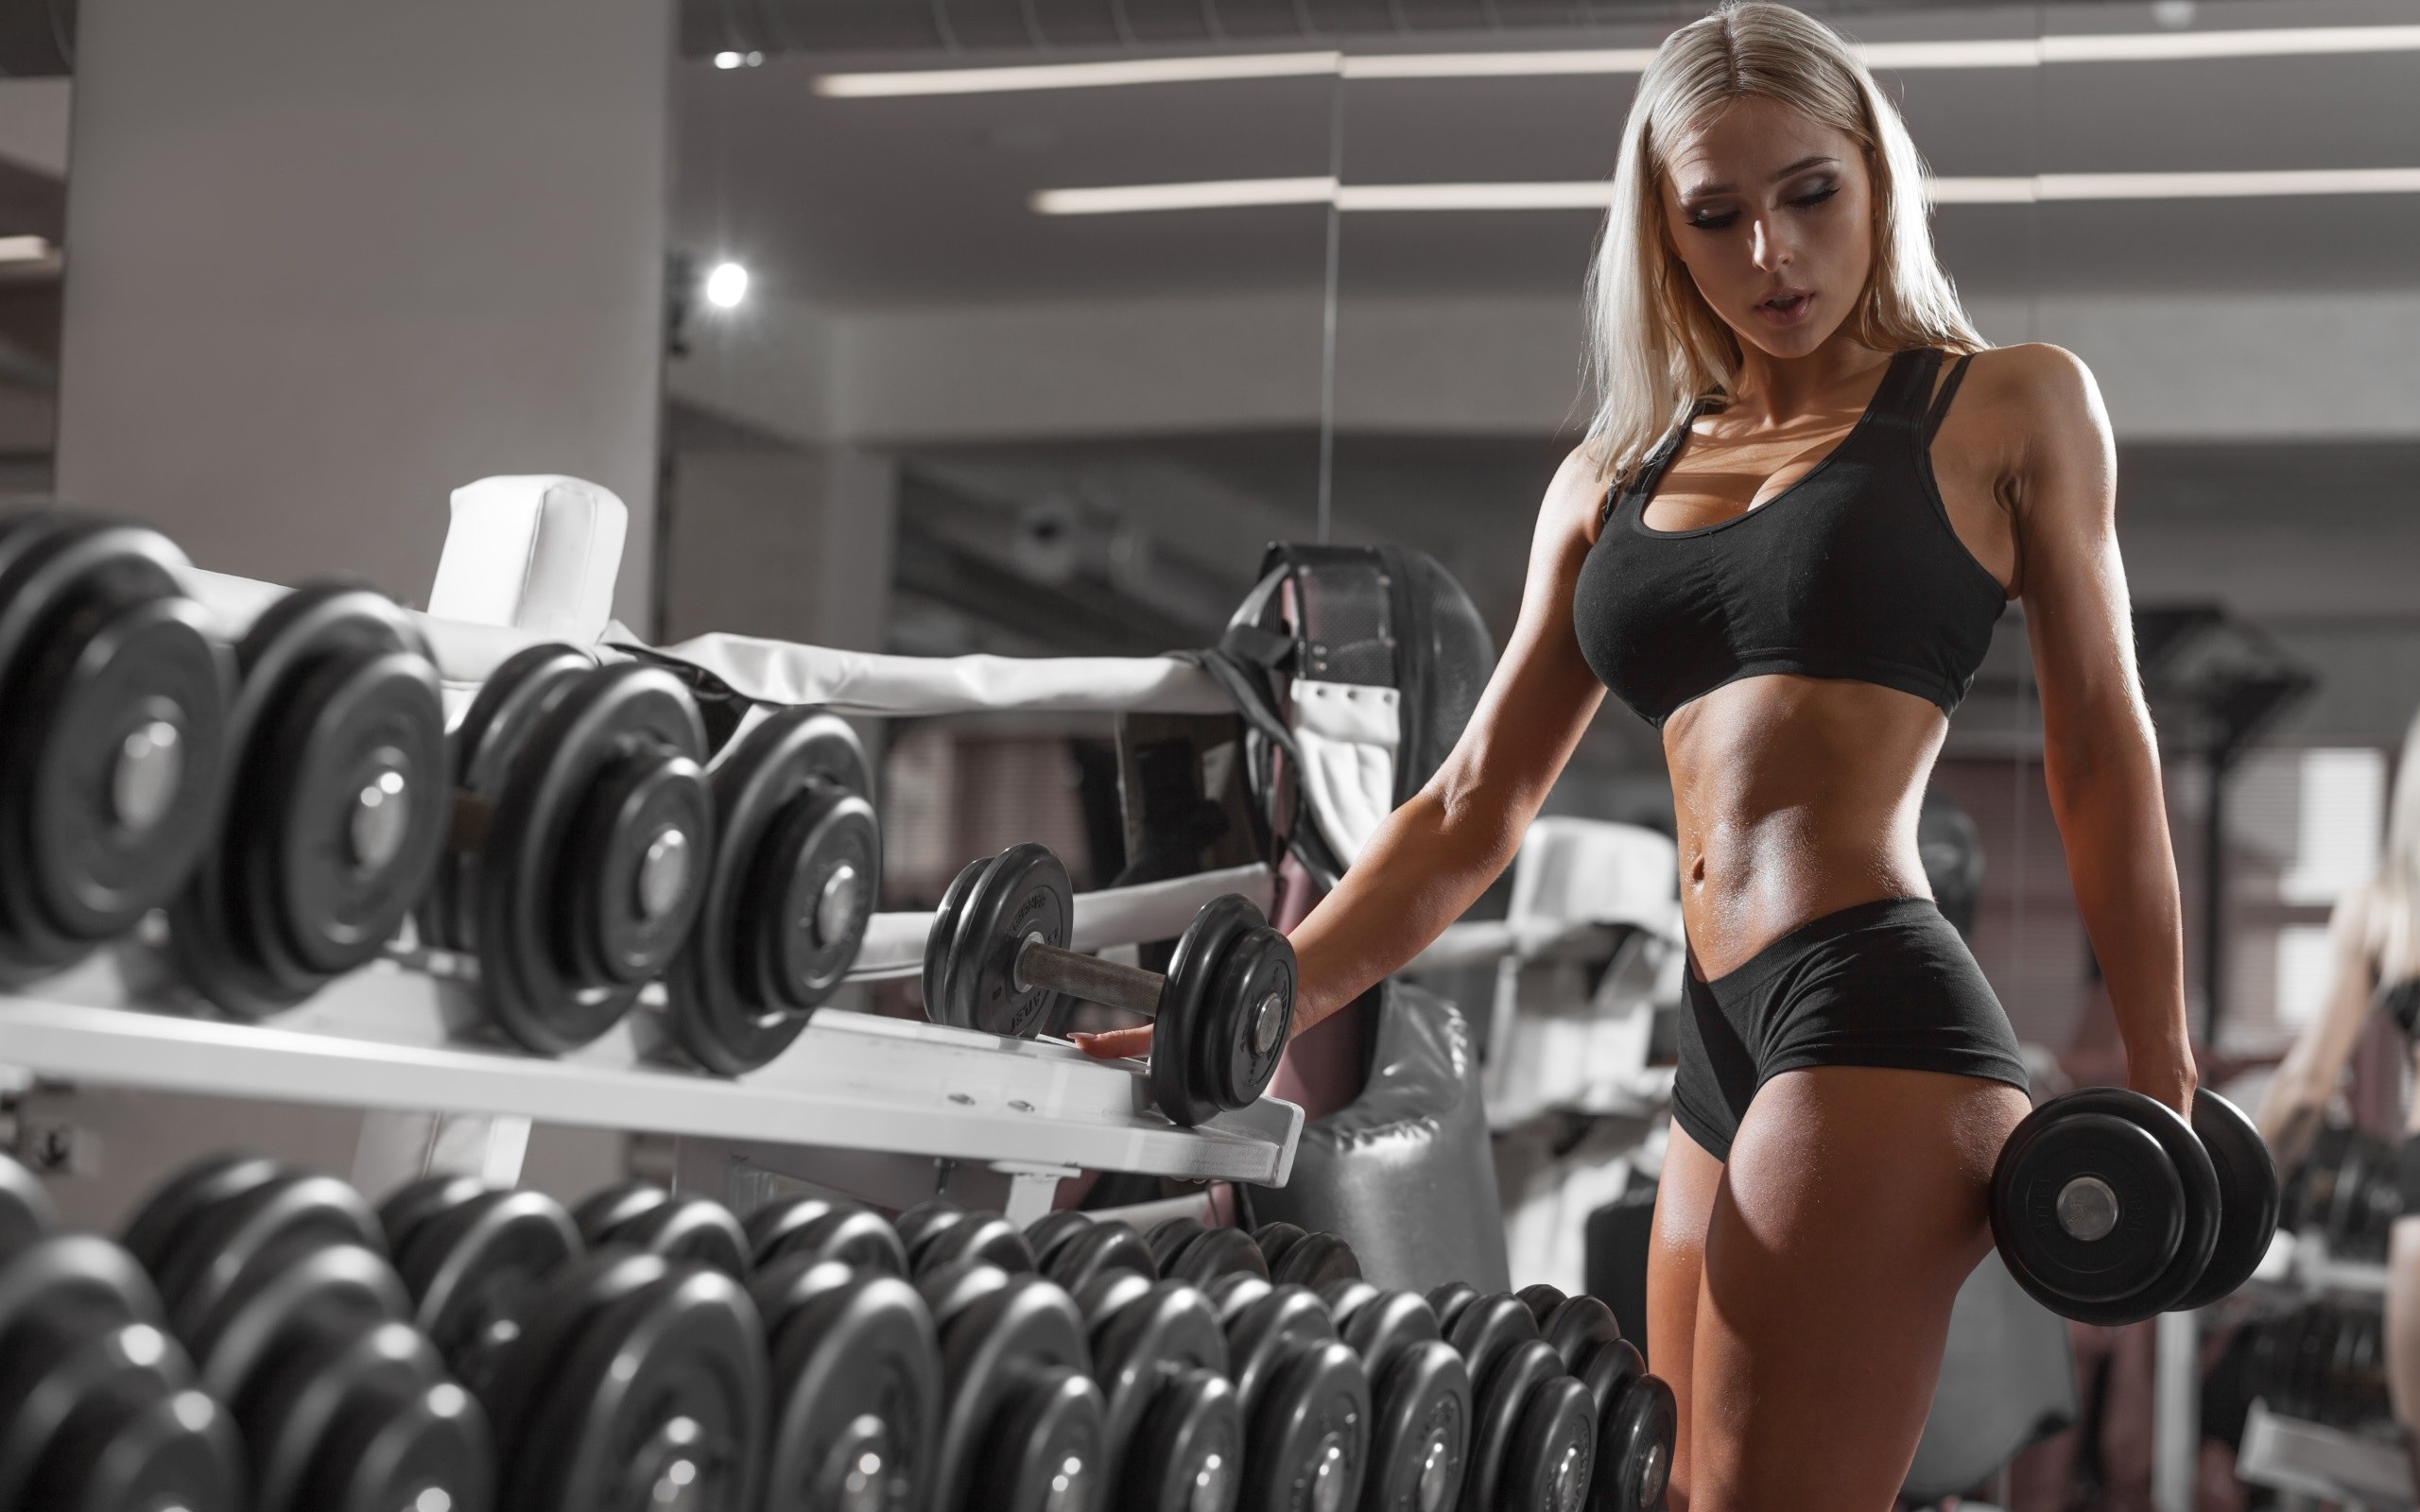 Wallpaper Blonde girl, fitness, dumbbells, gym 2560x1600 HD